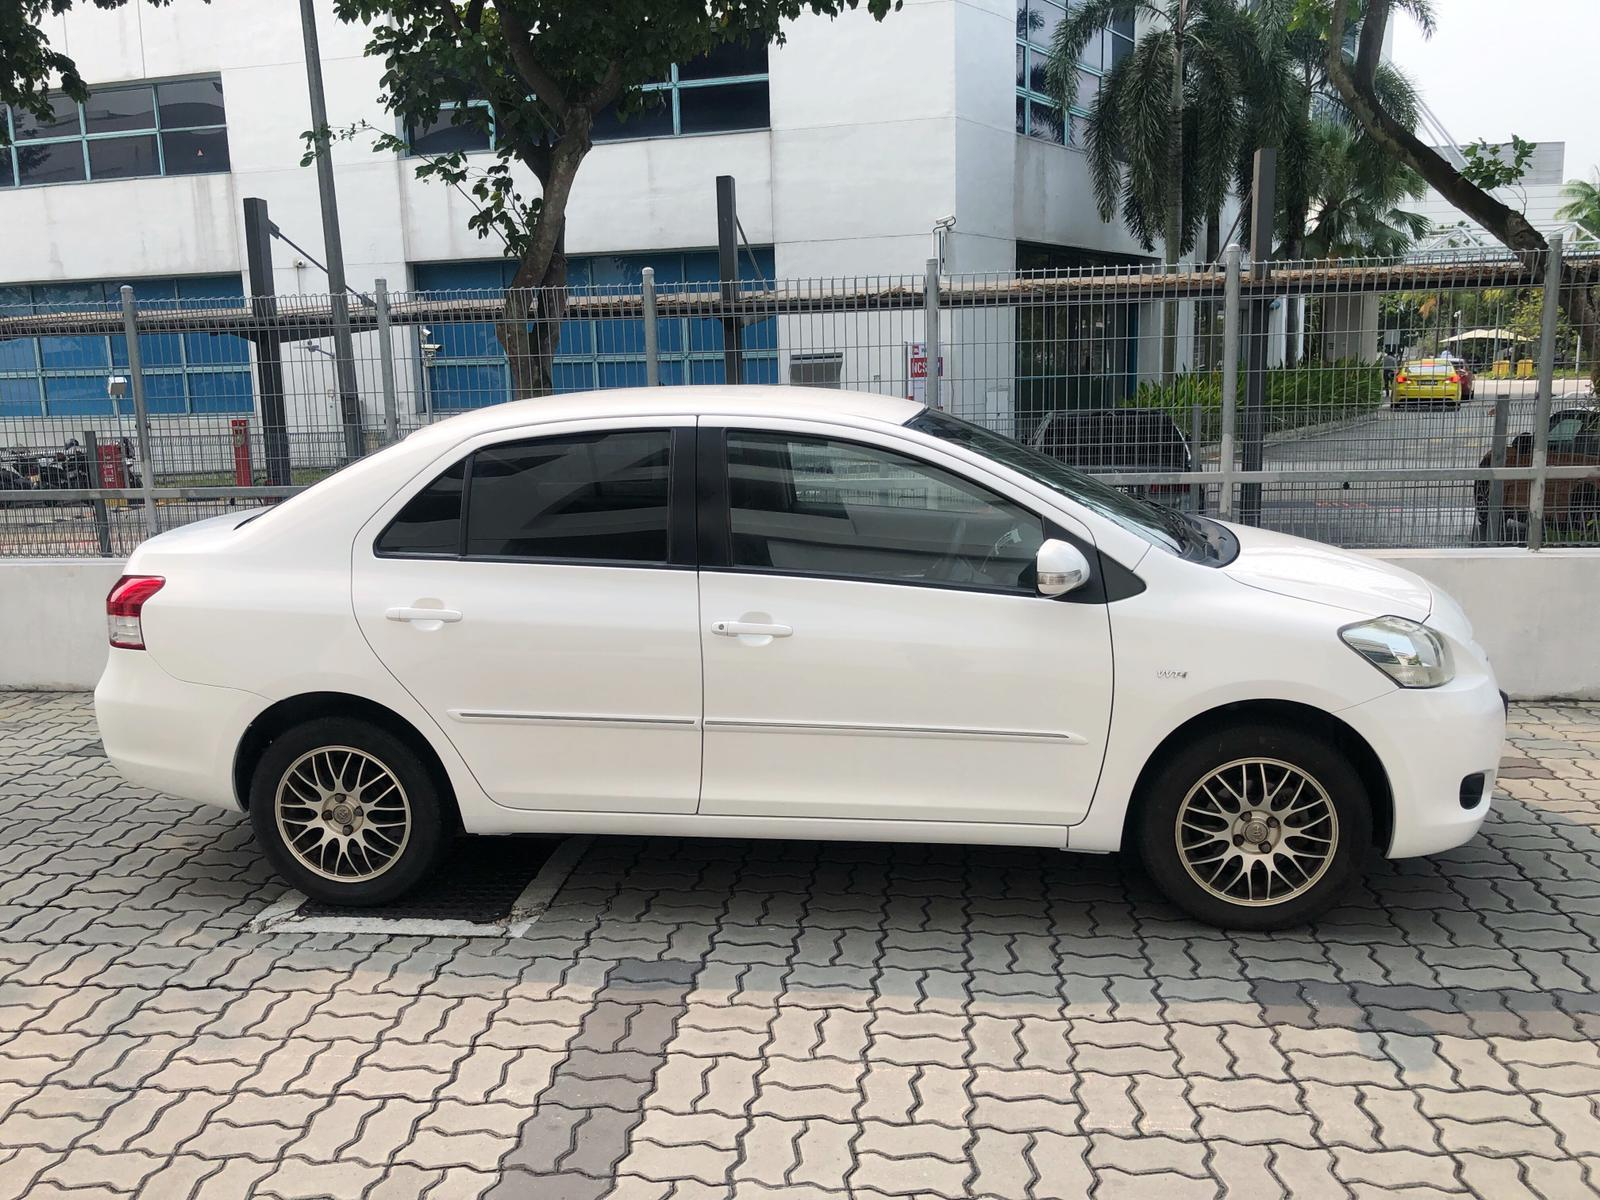 Toyota Vios 1.5a top condition*$230 after gojek rebate.PHV For Rent Grab Rental Gojek Or Personal Use Low price and Cheap